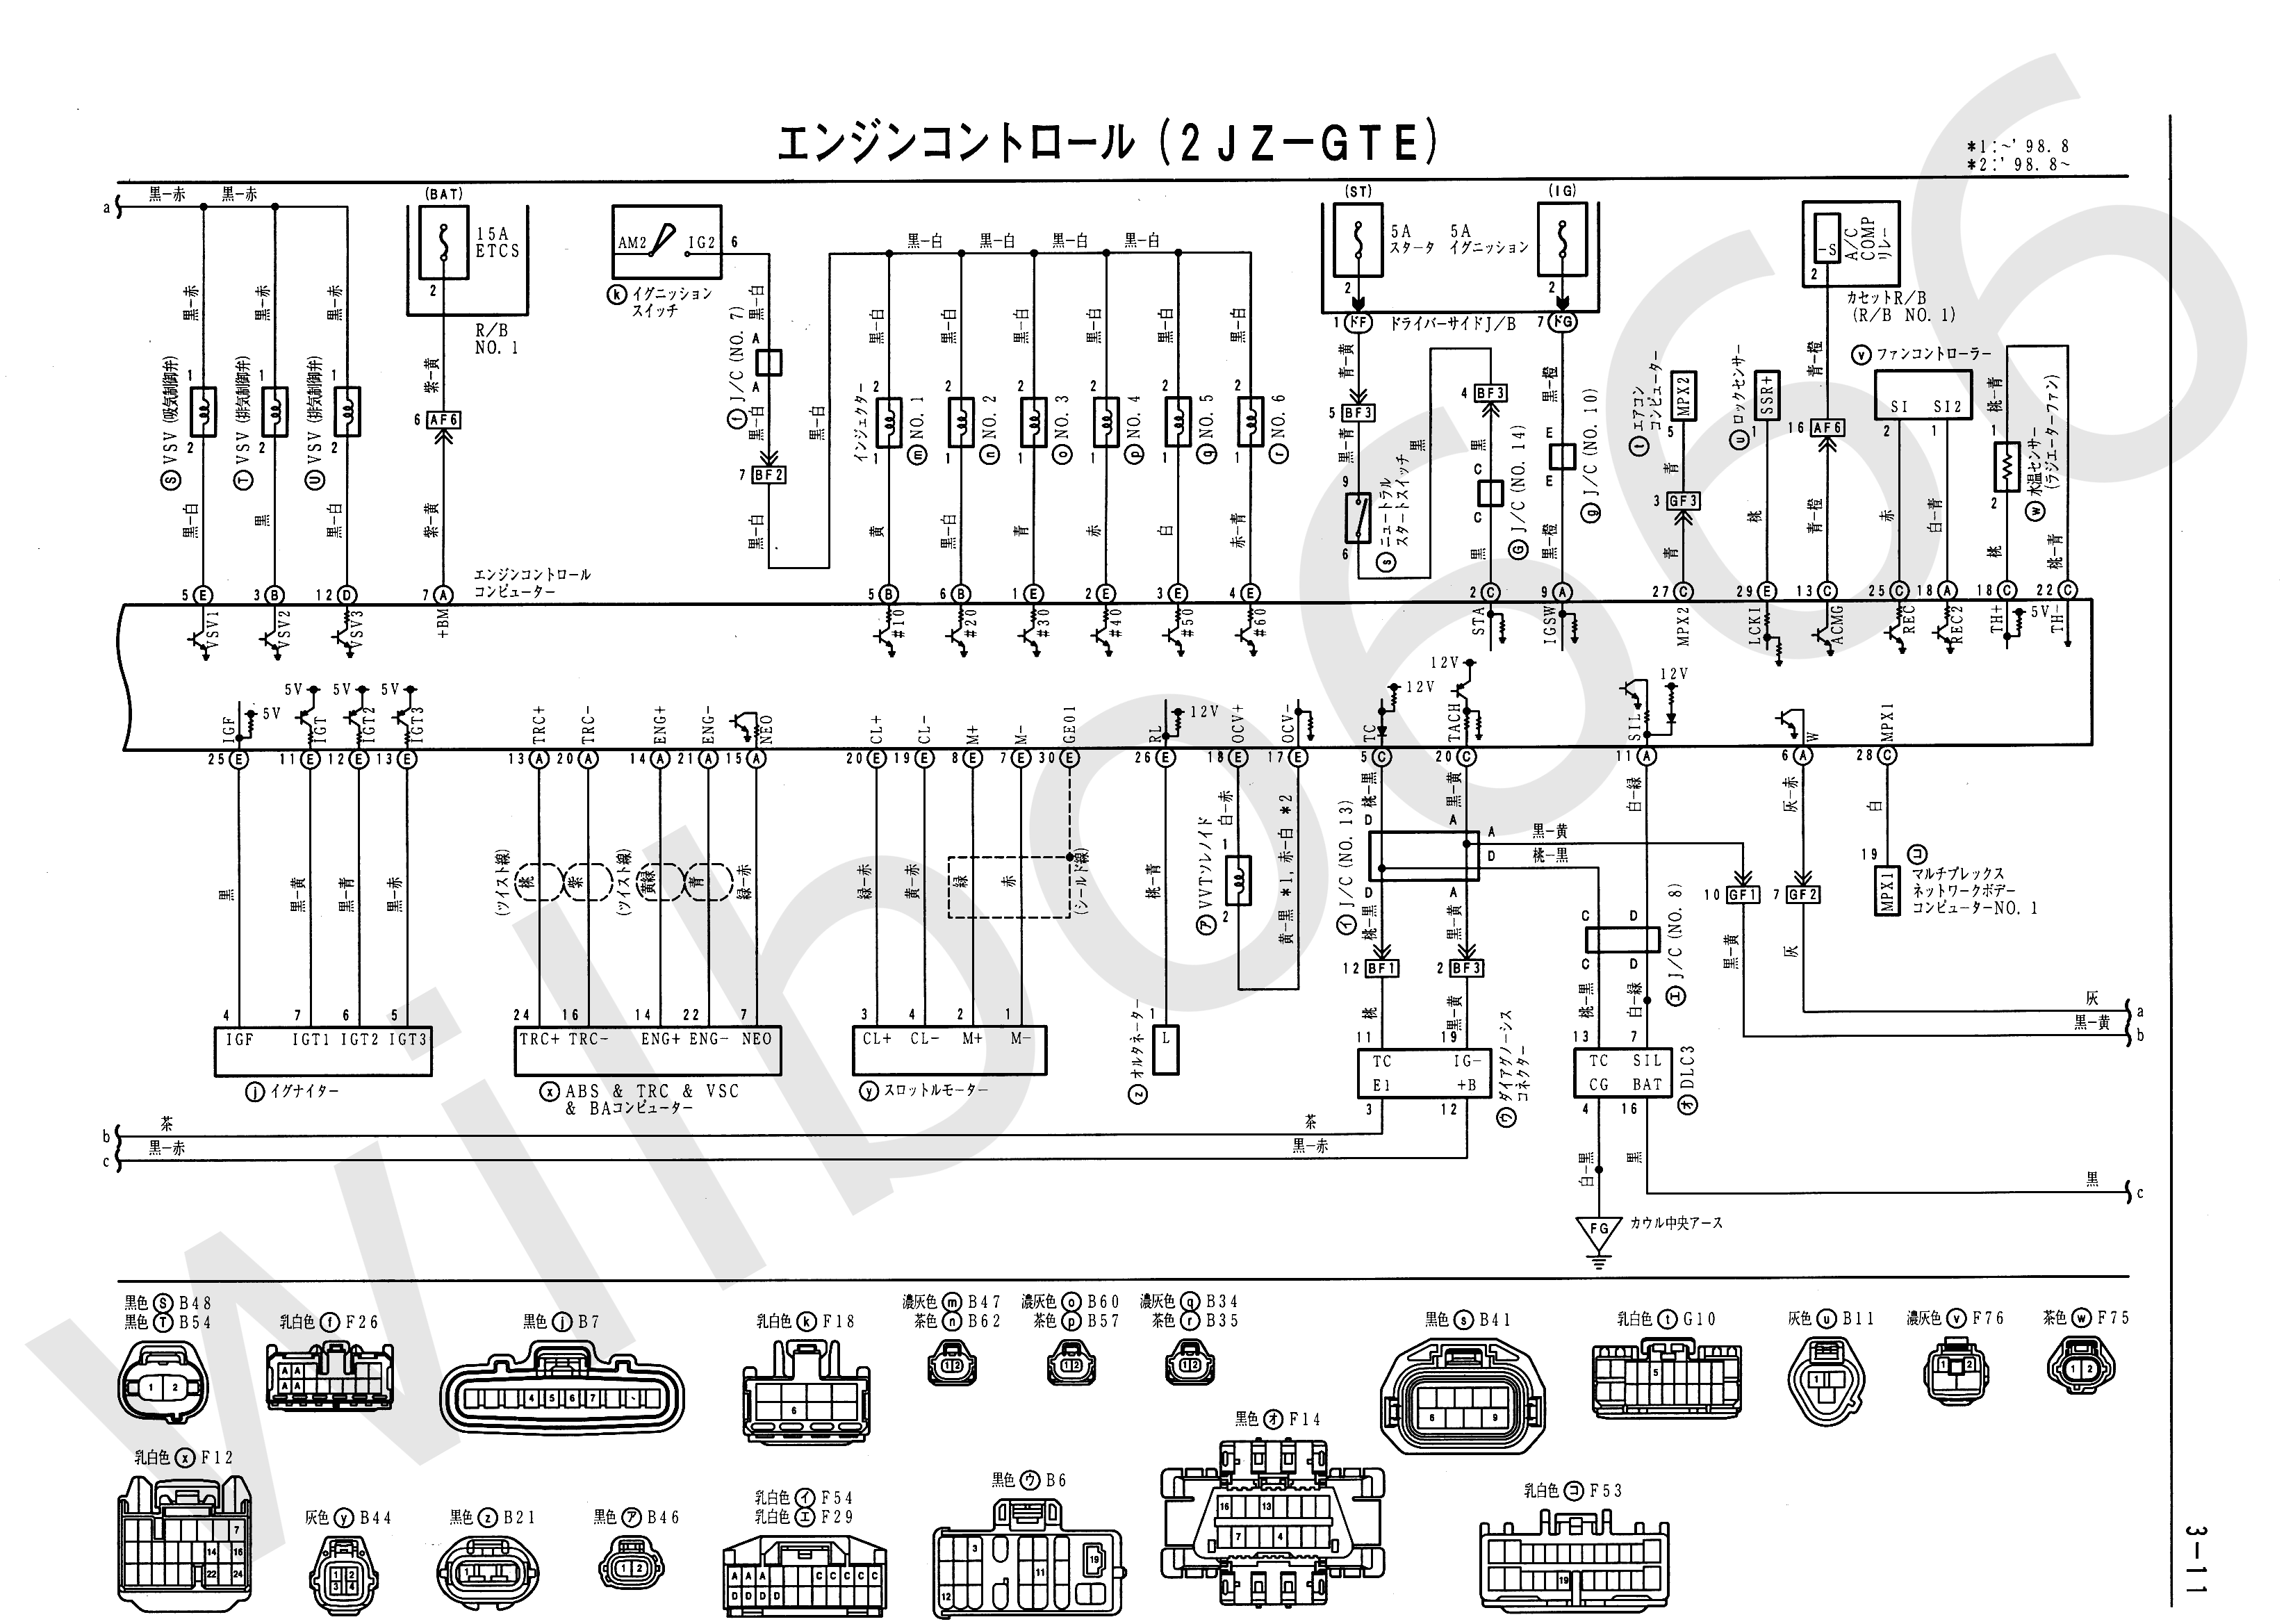 JZS161 Electrical Wiring Diagram 6748505 3 11 1jz wiring diagram 1jz gte ecu pinout \u2022 wiring diagrams j squared co 1jz vvti wiring harness s13 at soozxer.org